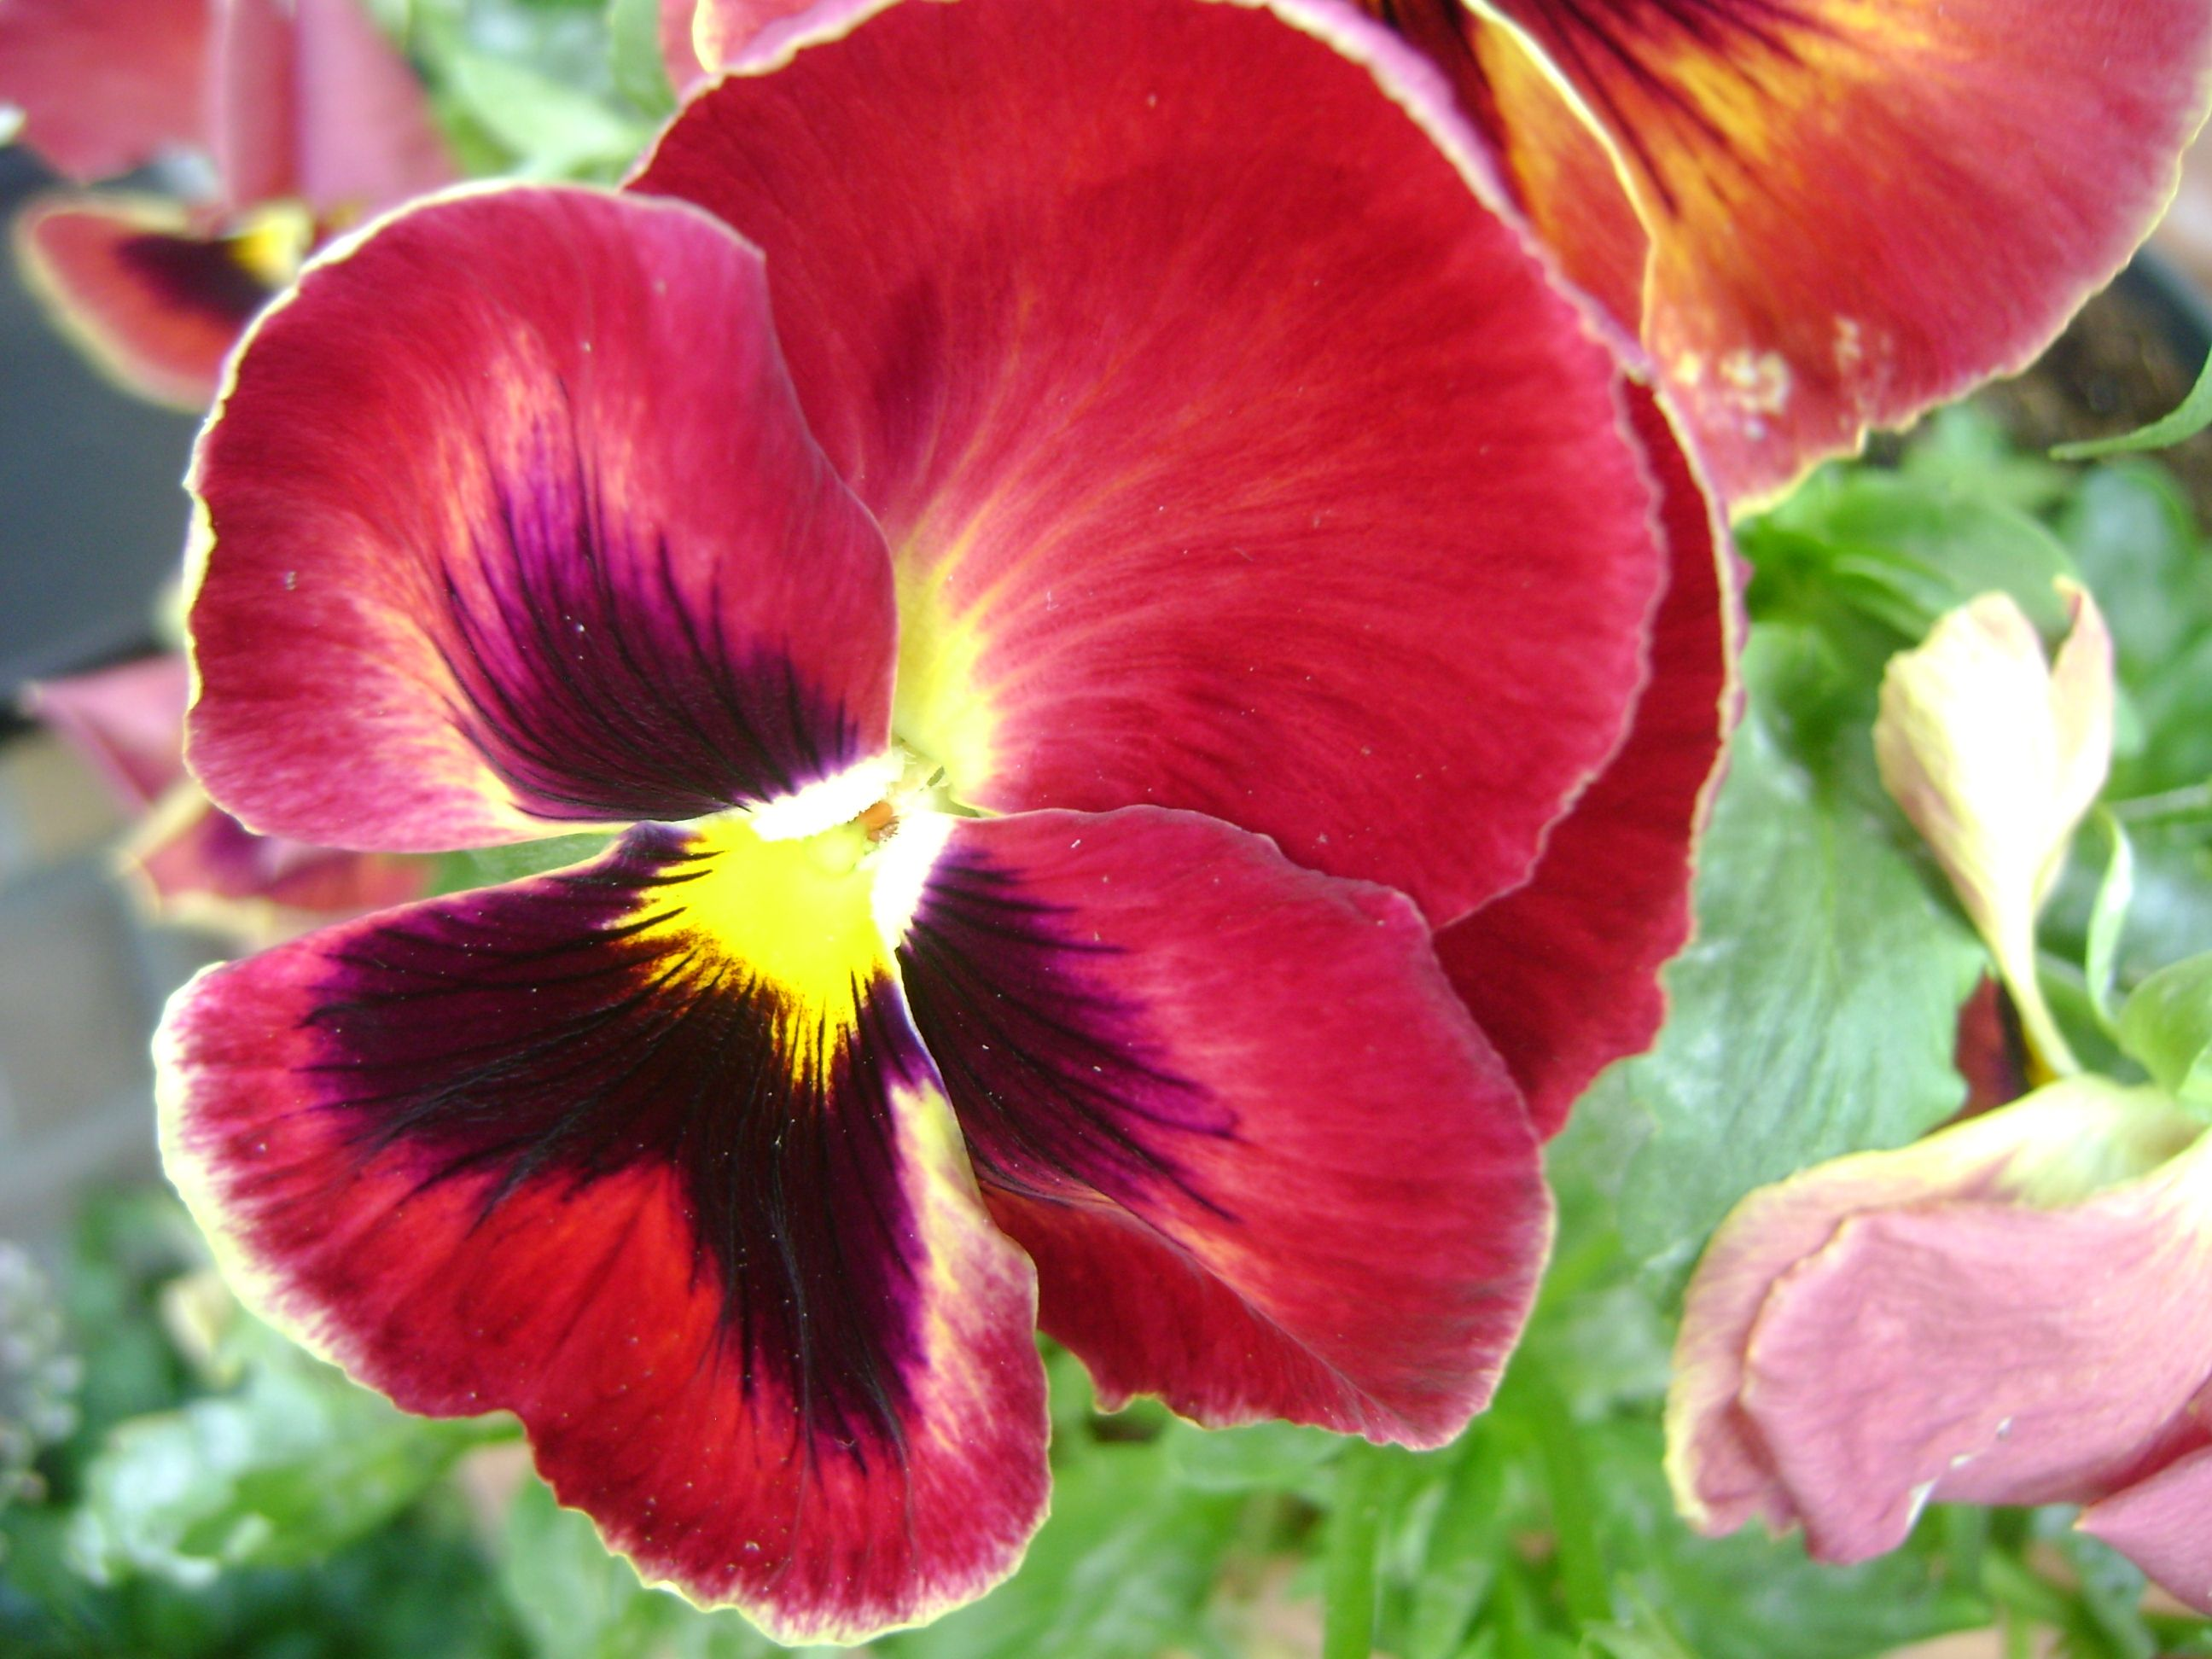 Pin By Siny Hofstee On Flowers My Own Photographs Flowers Pansies Rose